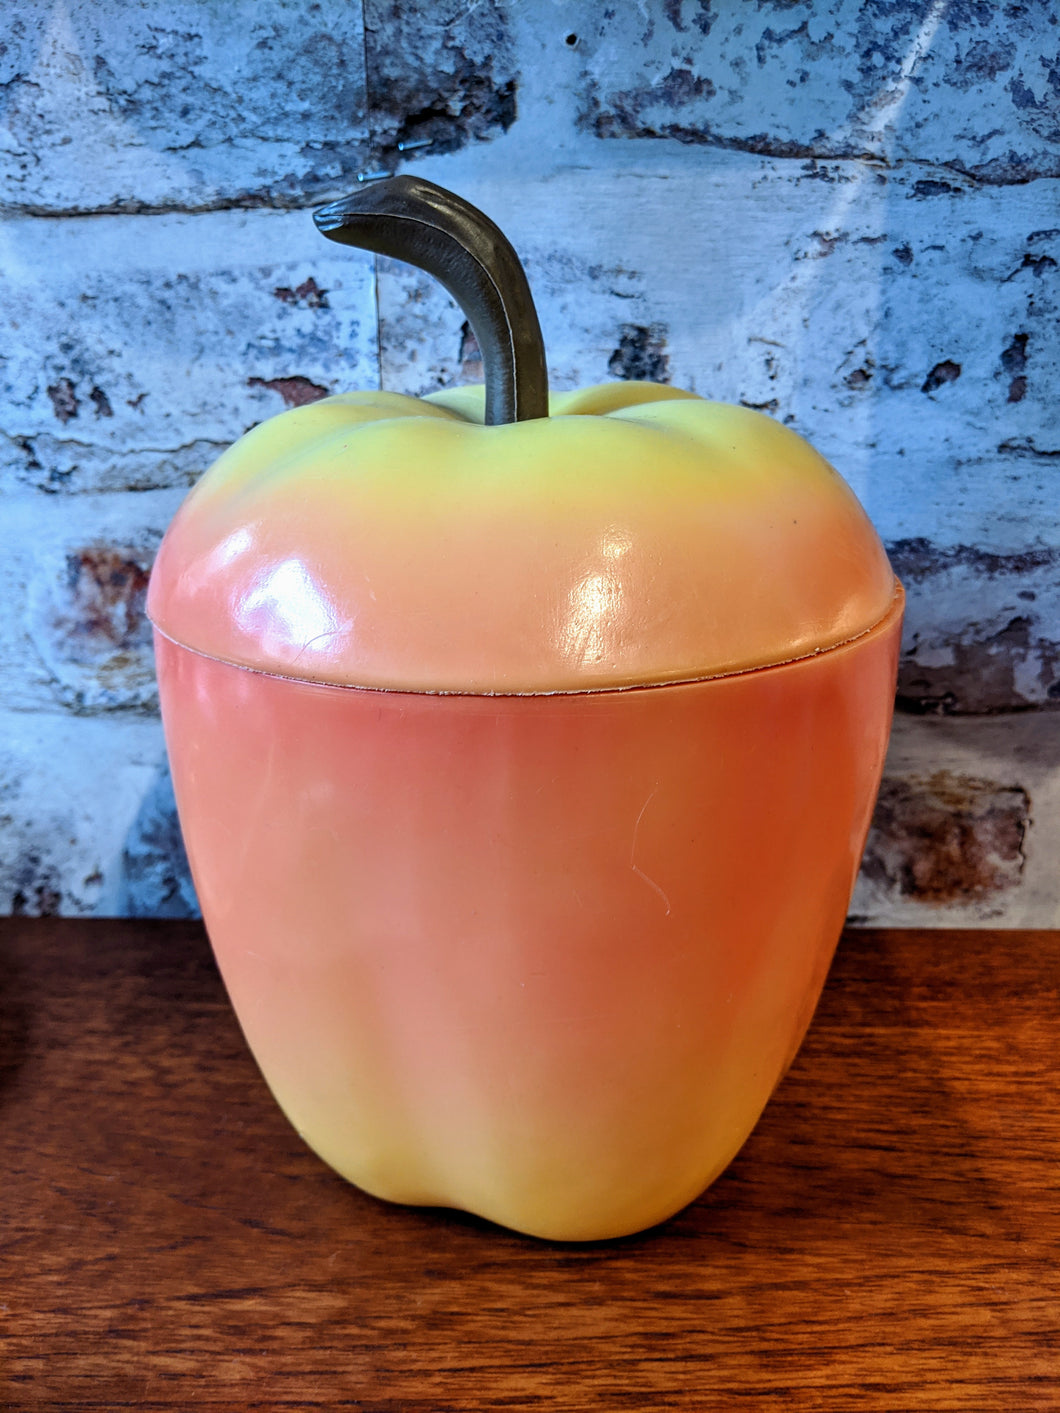 ** SOLD ** 1960's Kitsch Apple Ice Bucket